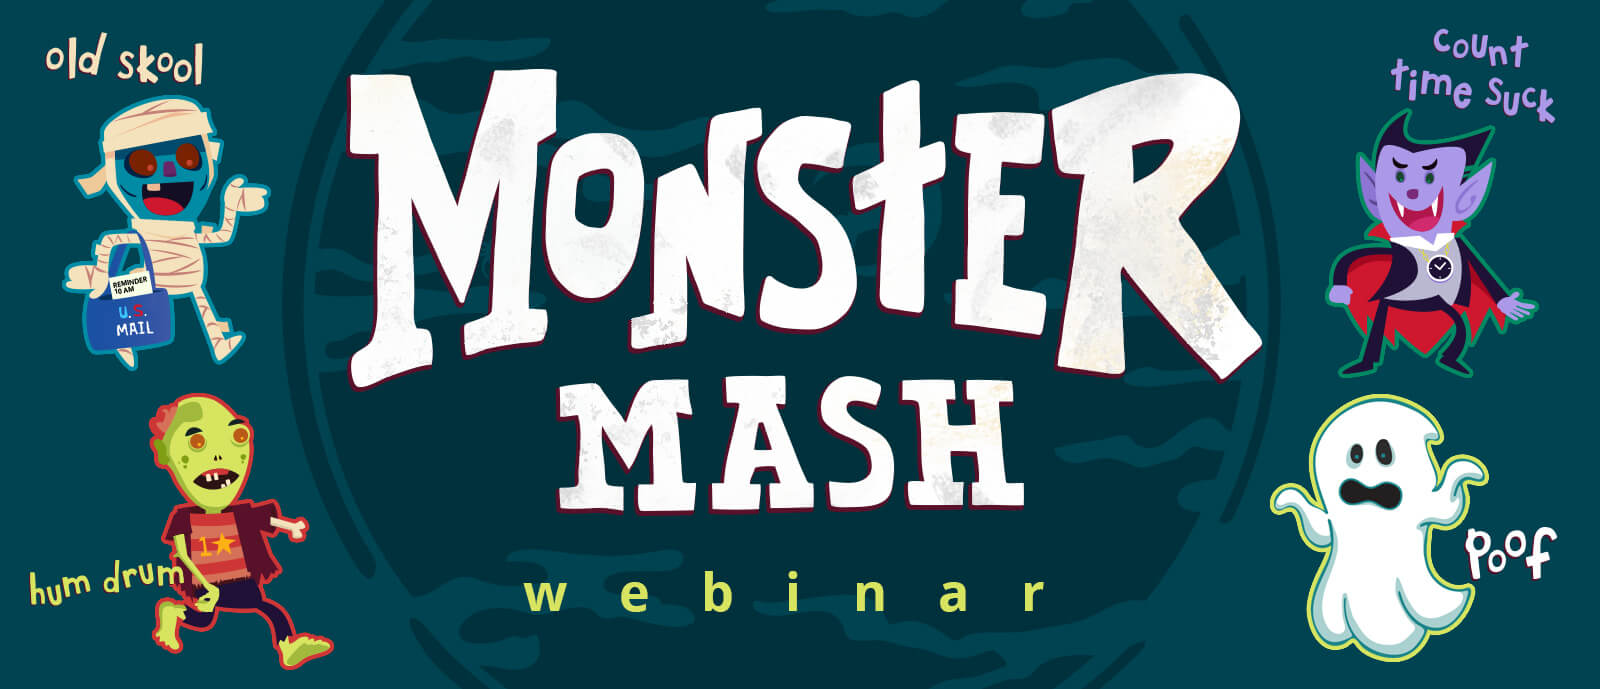 monster-webinarlphero